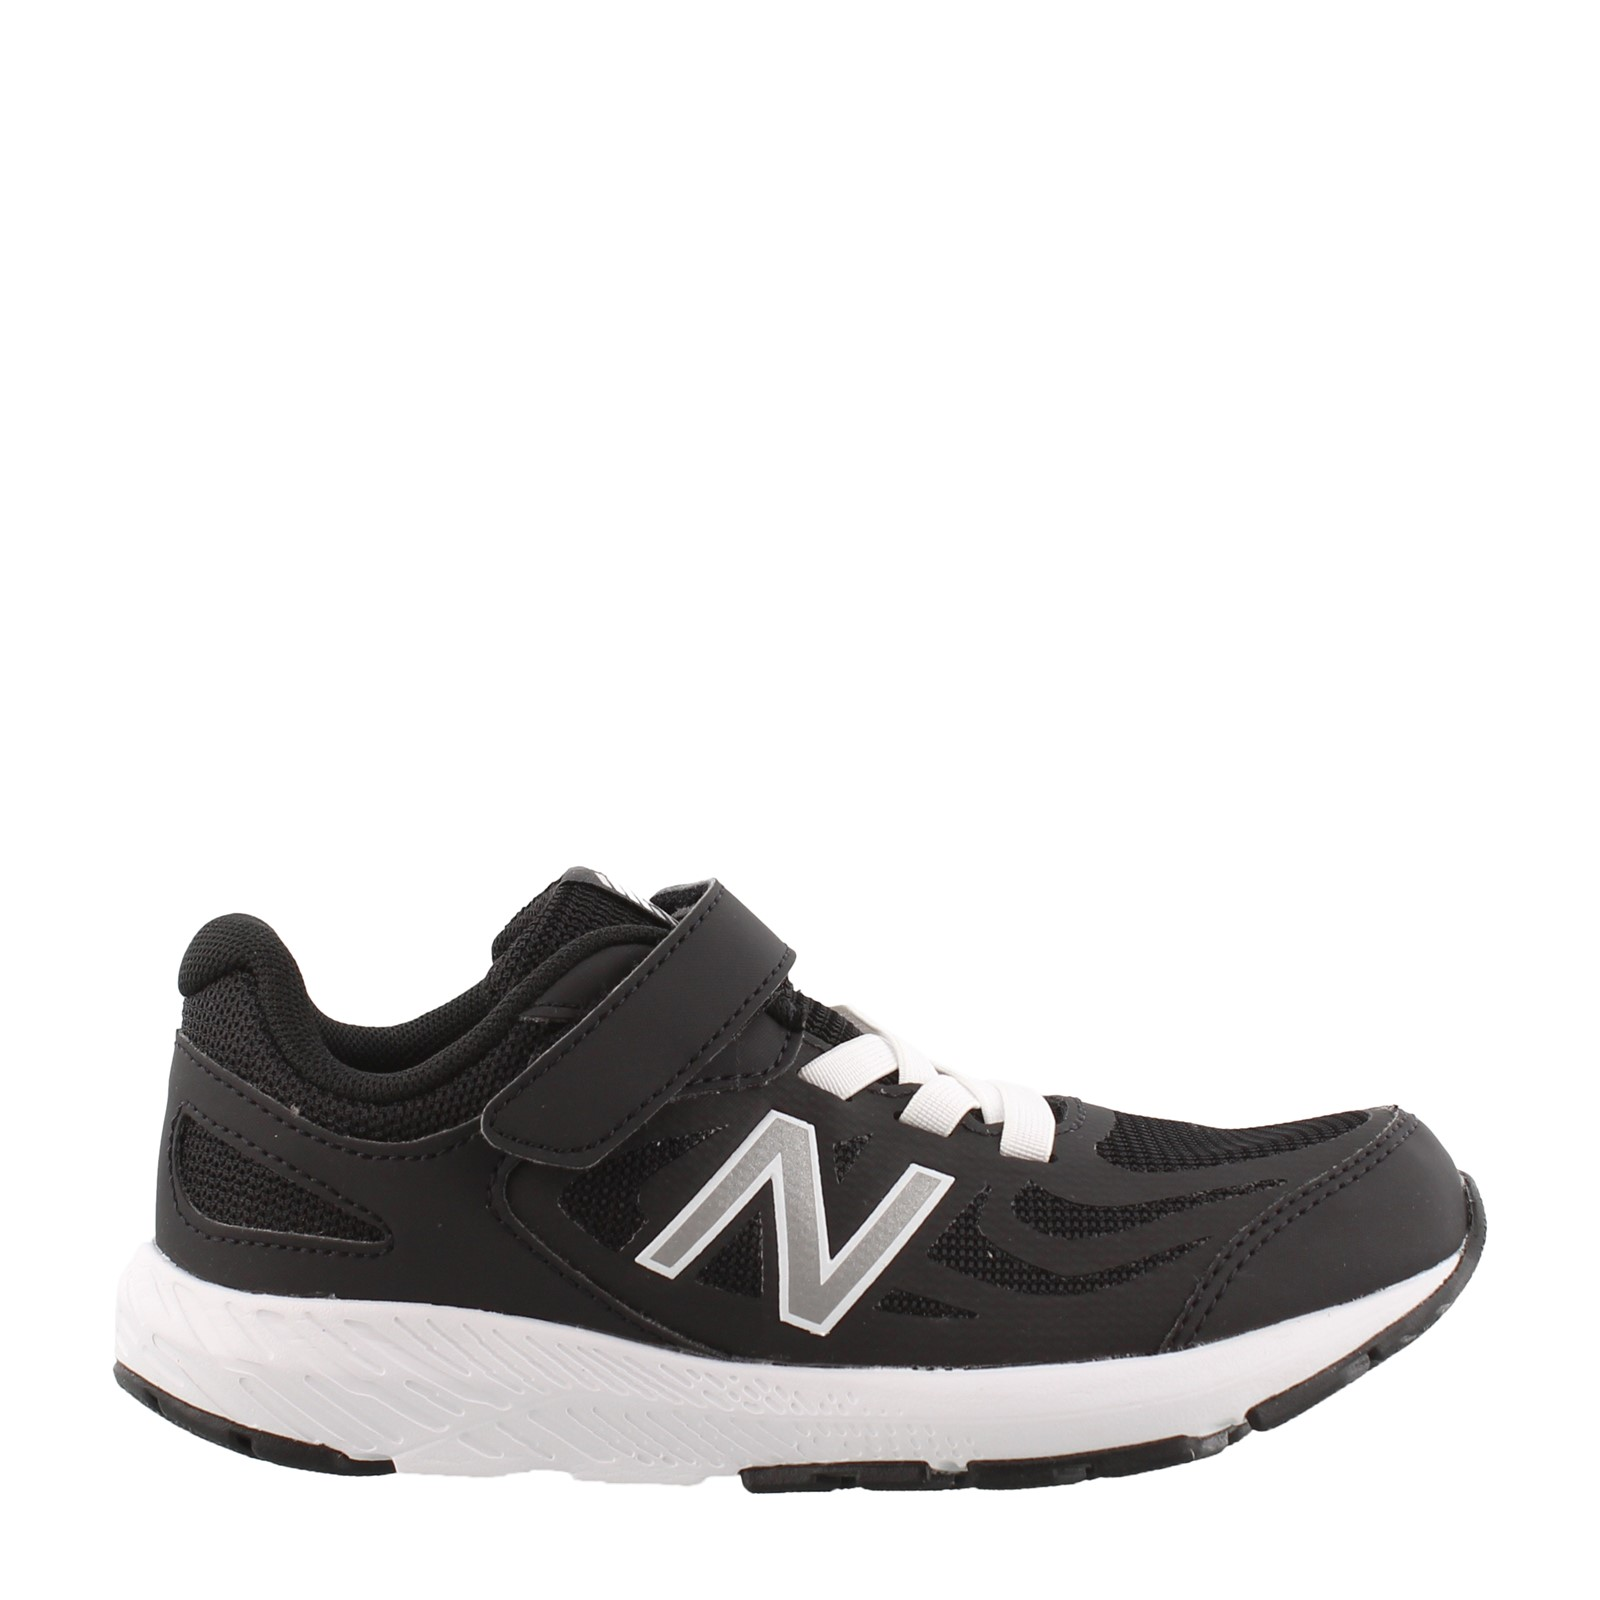 Boy's New Balance, 519 Athletic Sneaker